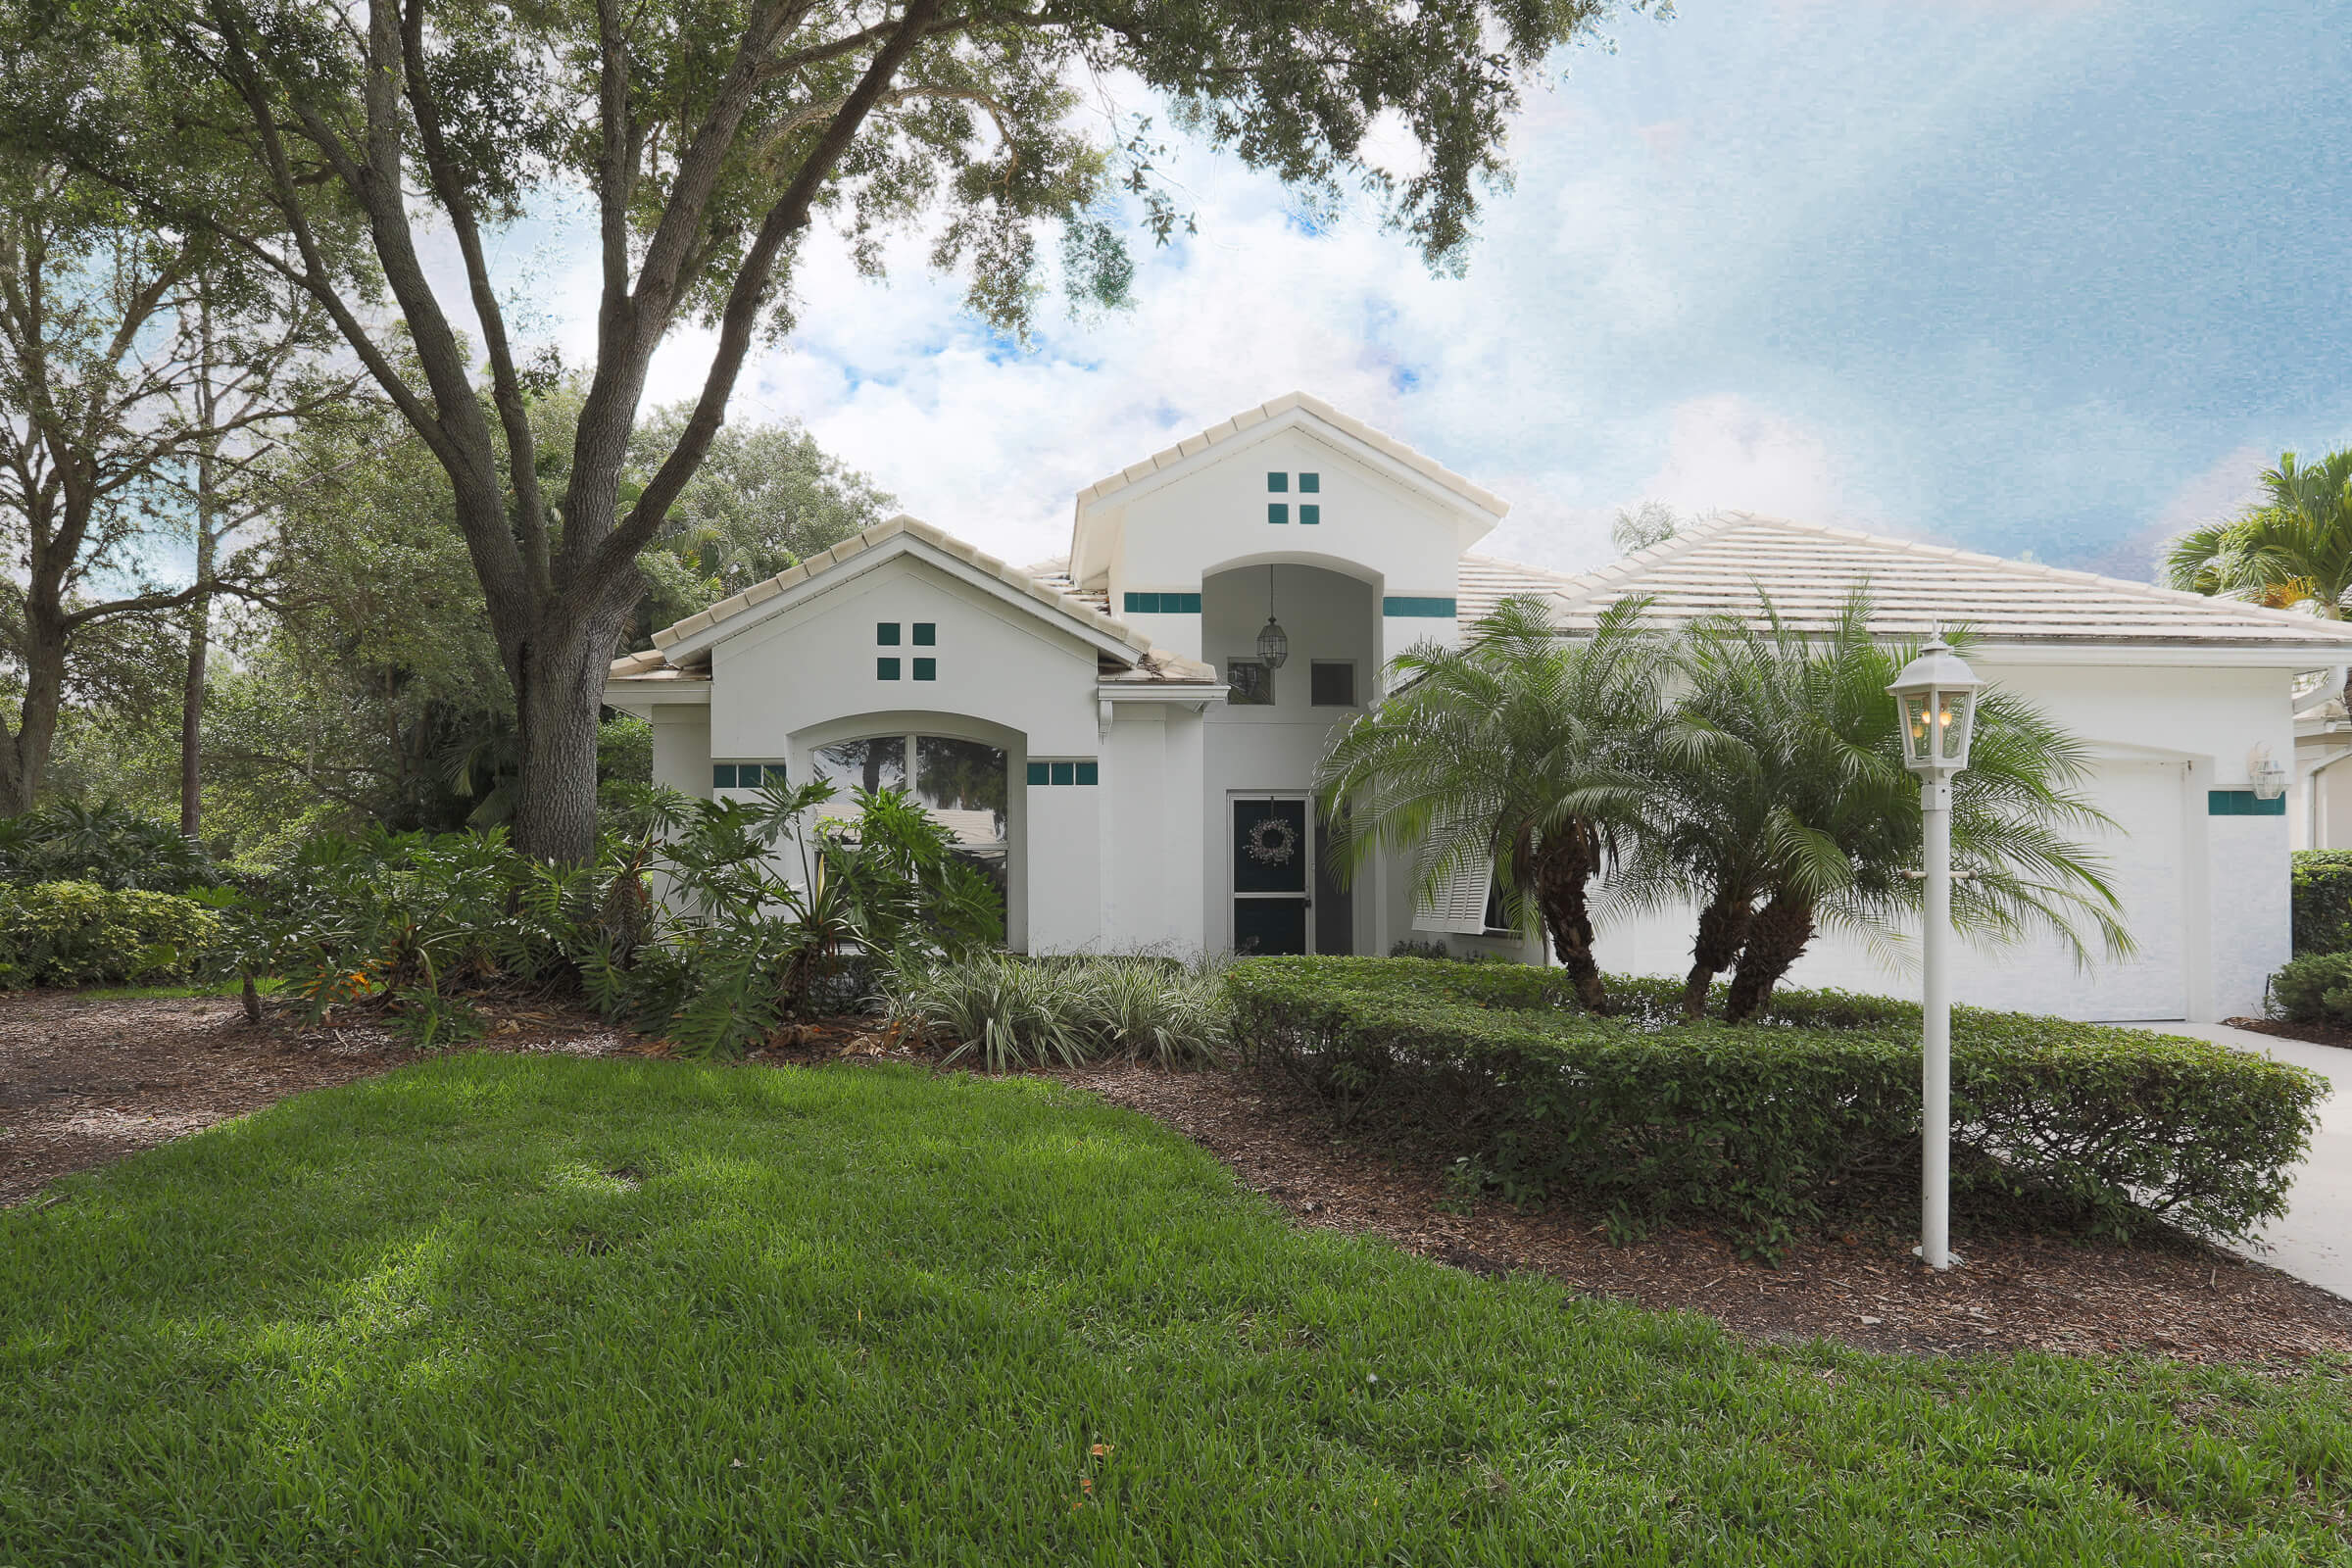 University Park Country Club Vacation Rentals - Jennette Properties